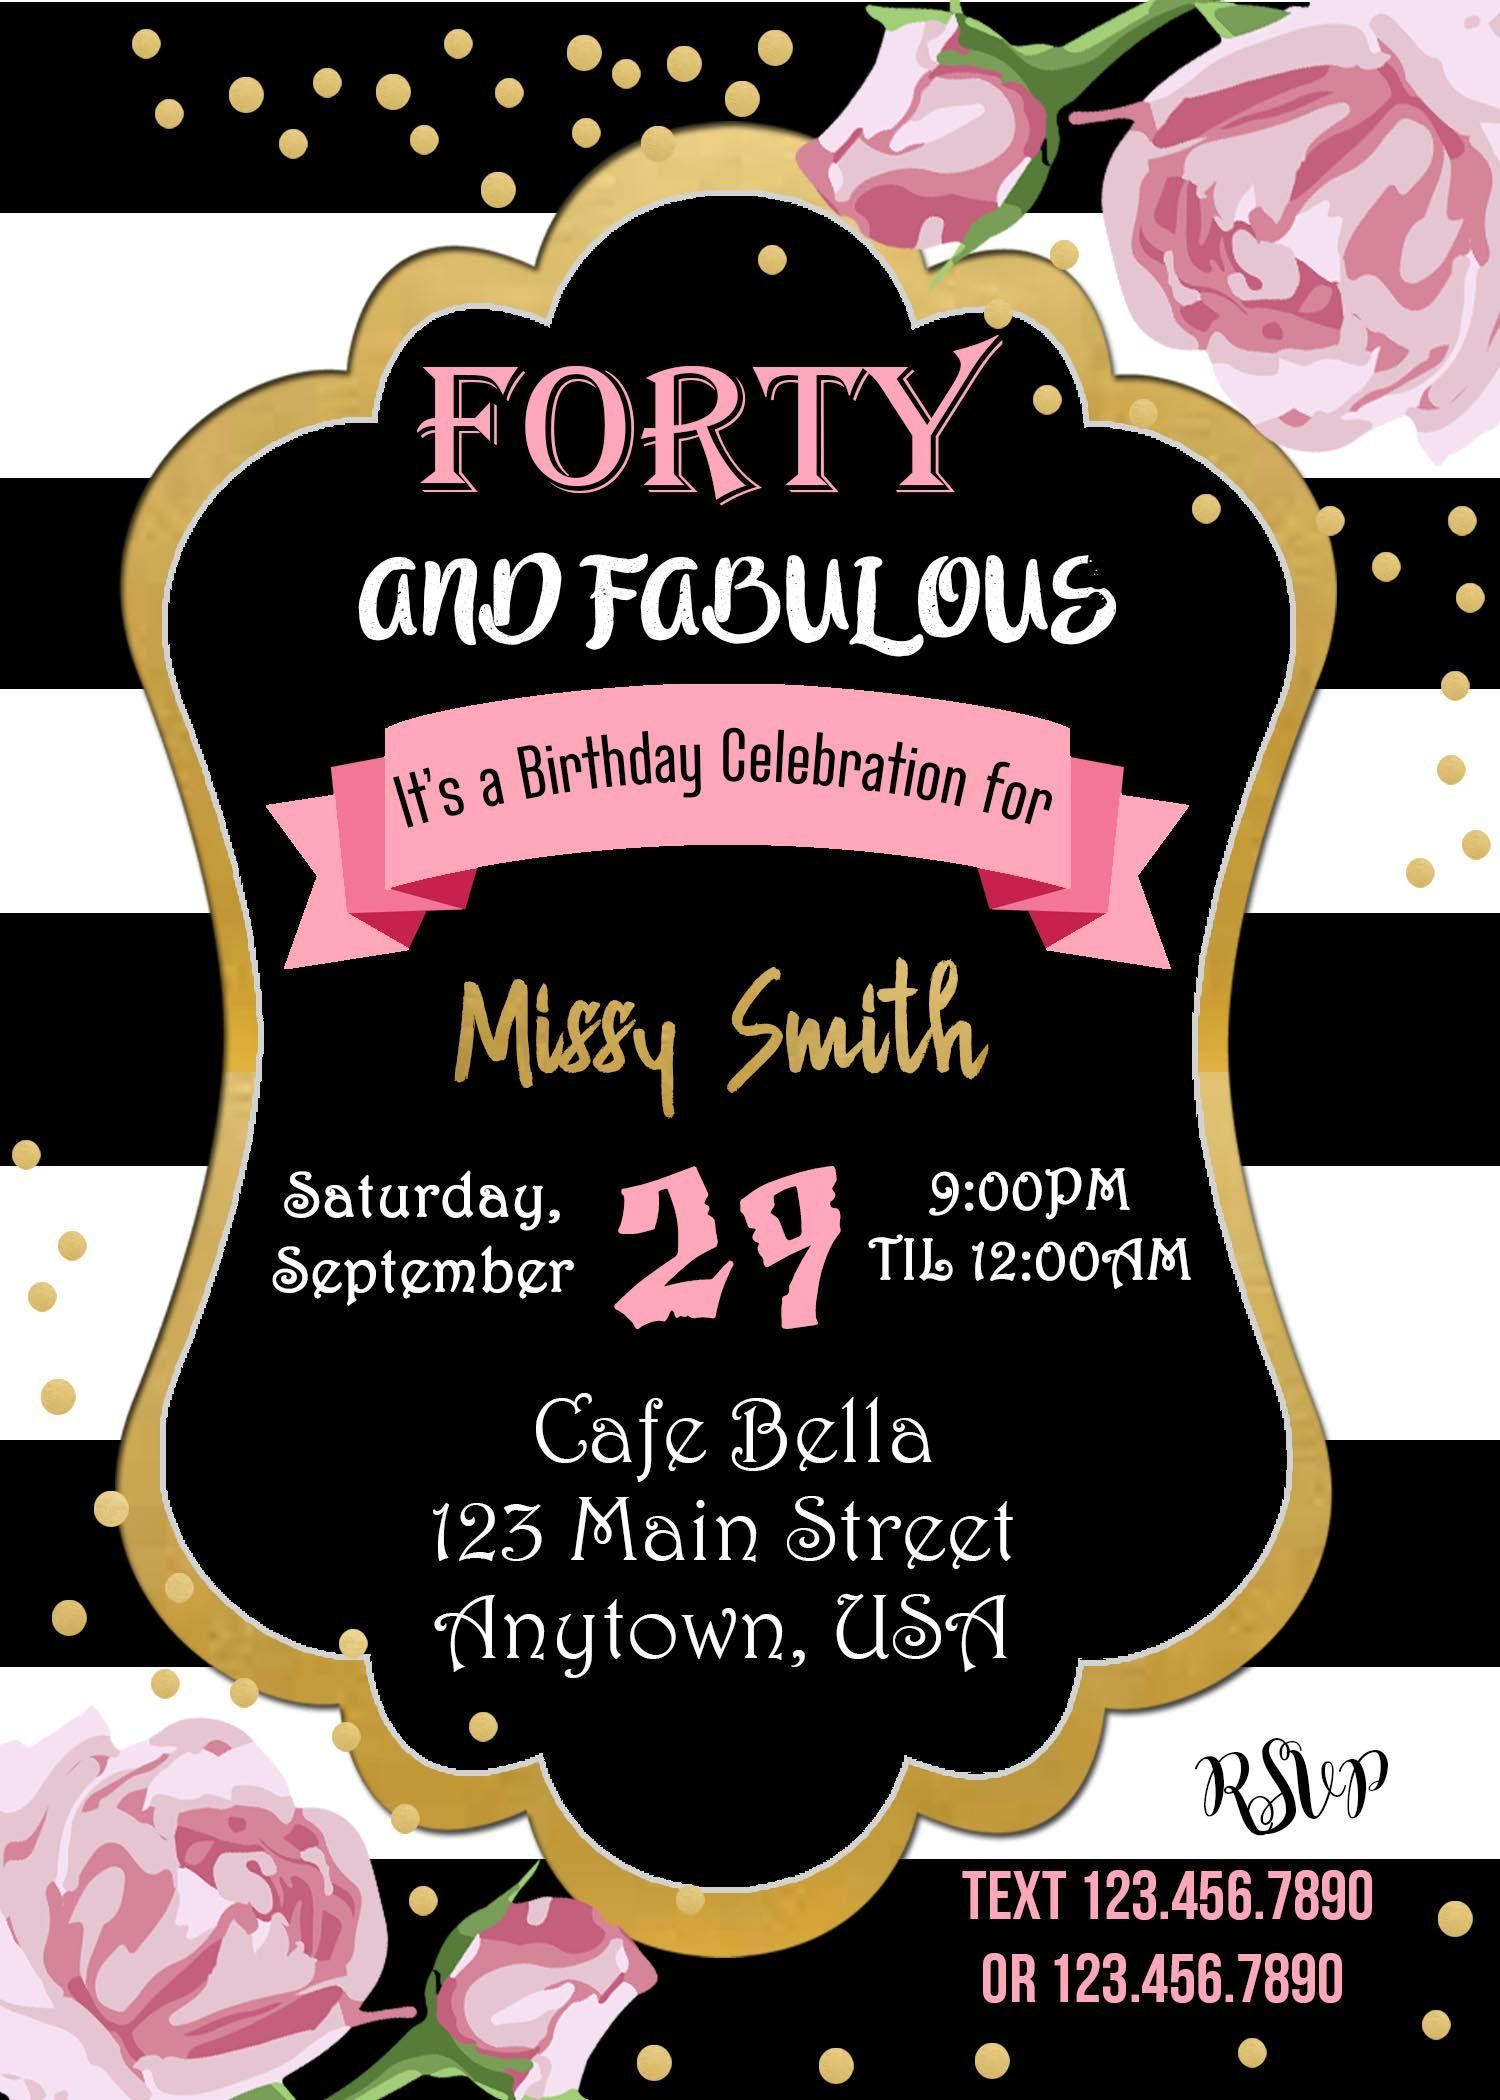 40 And Fabulous Birthday Invitation In 2019 40th Birthday